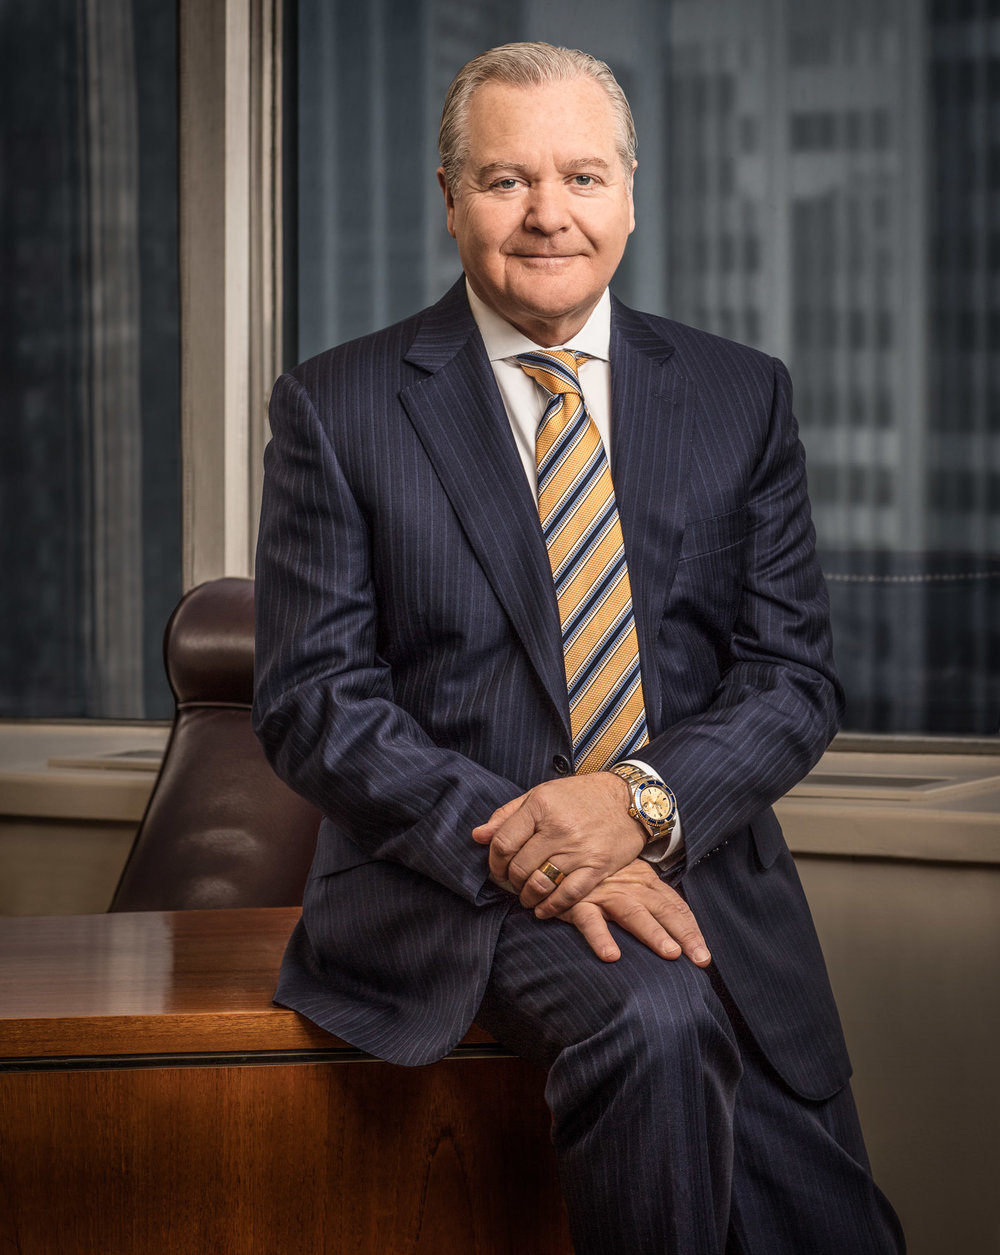 Lawyer photography | portraiture